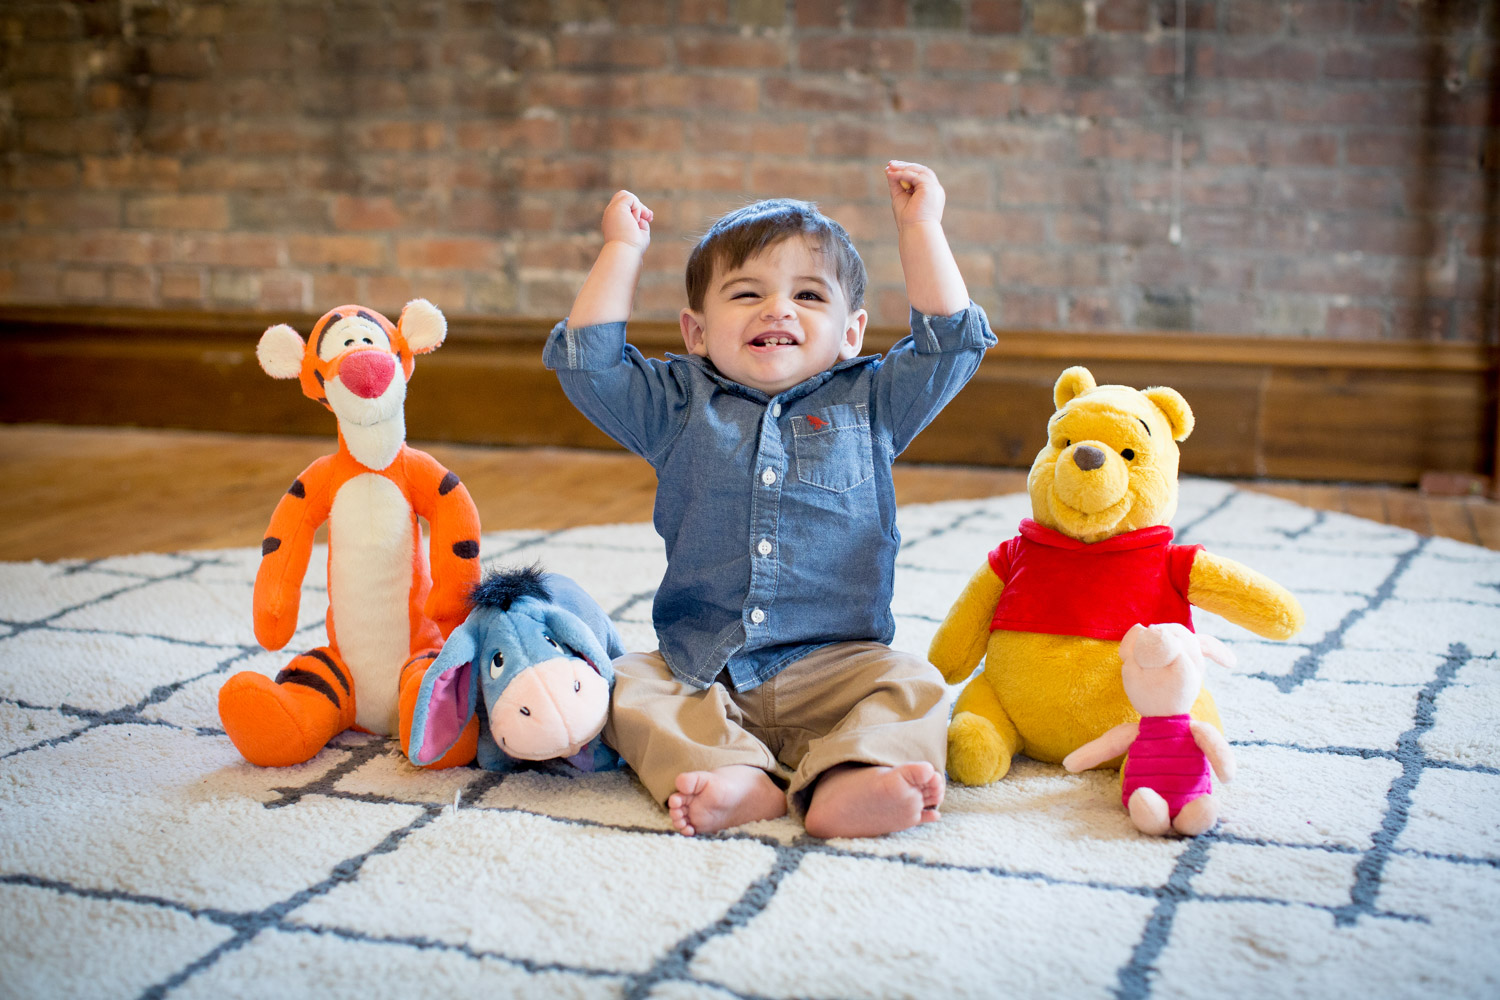 04-cornerstone-studios-portrait-session-baby-boy-one-whinnie-the-pooh-plush-line-up-joy-mahonen-photography.jpg